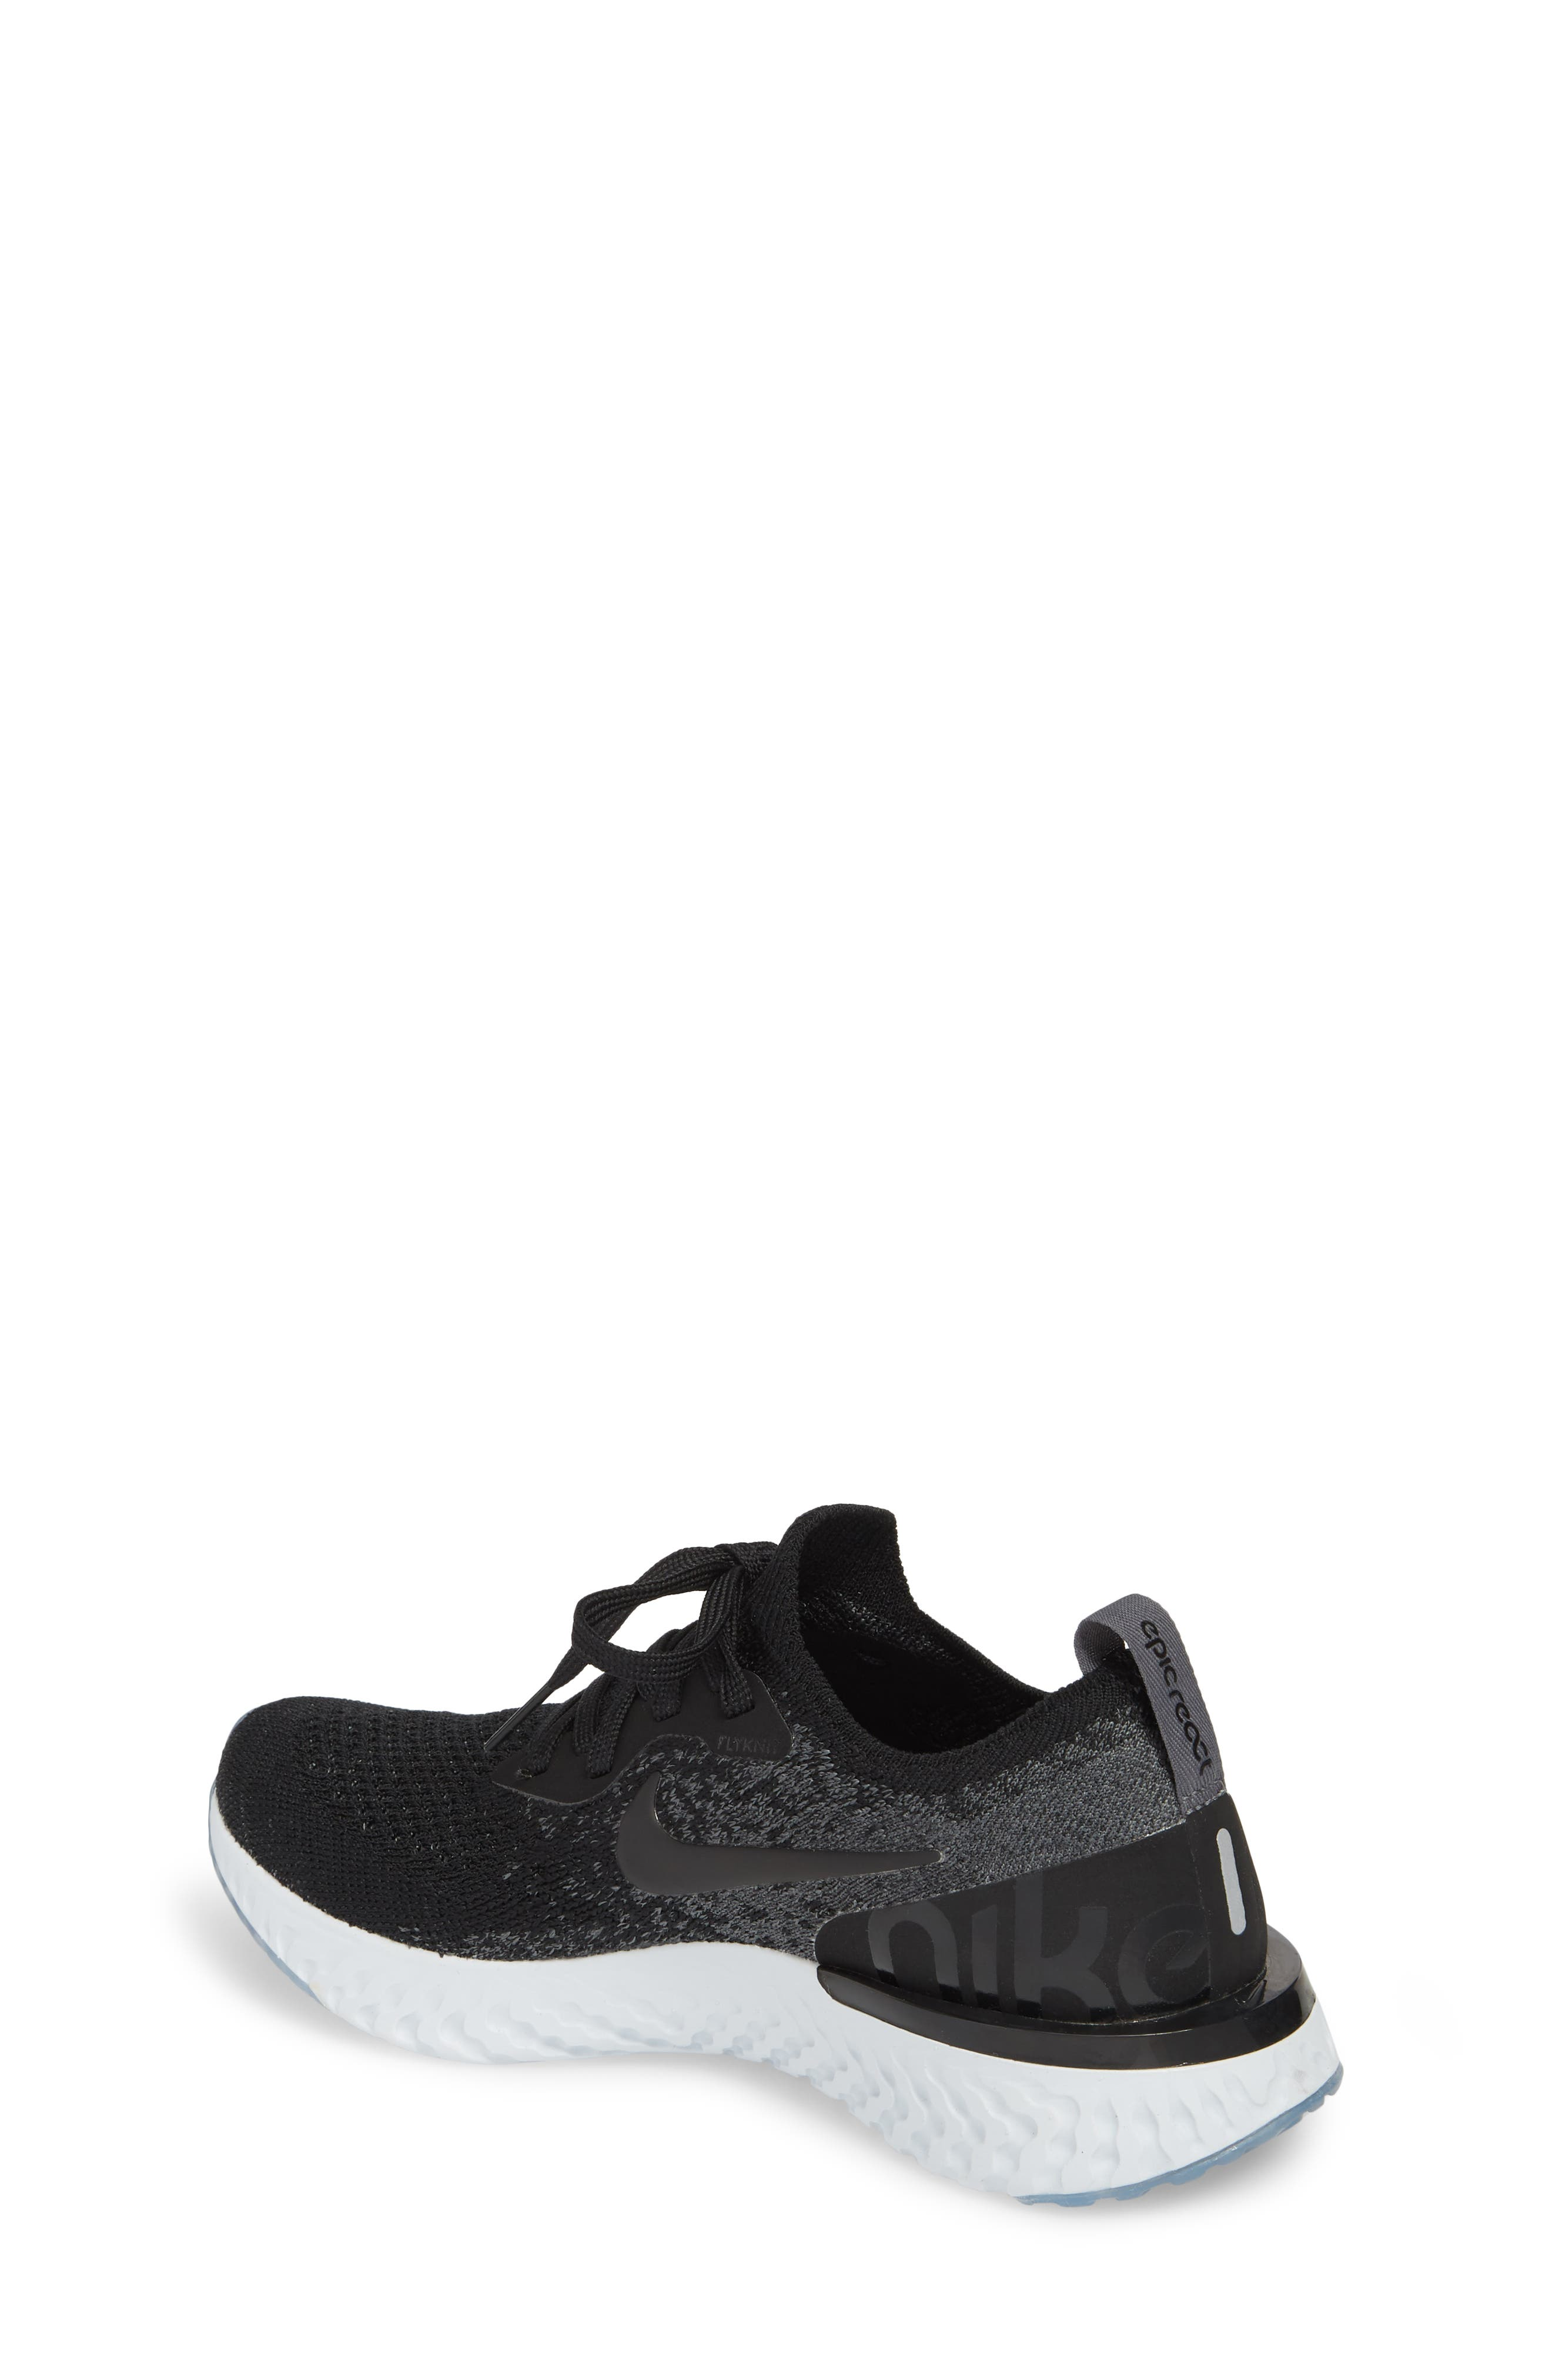 Epic React Flyknit Running Shoe,                             Alternate thumbnail 2, color,                             Black/ Grey/ Pure Platinum